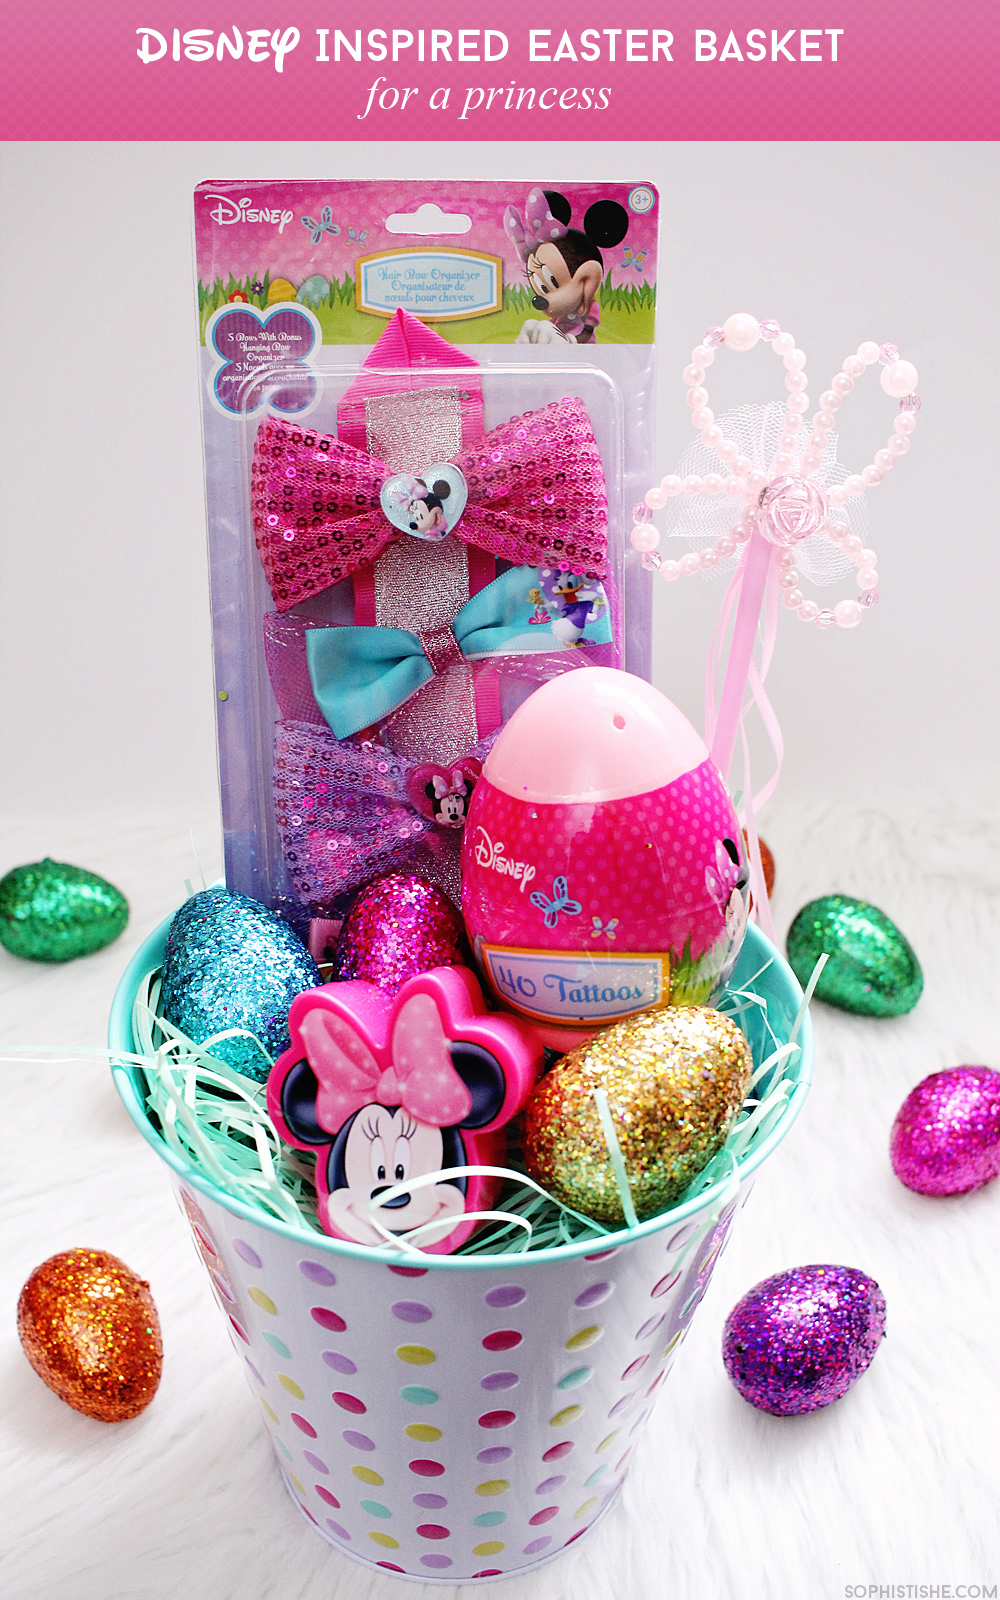 Disney Easter Basket & Cheap Souvenir Ideas!